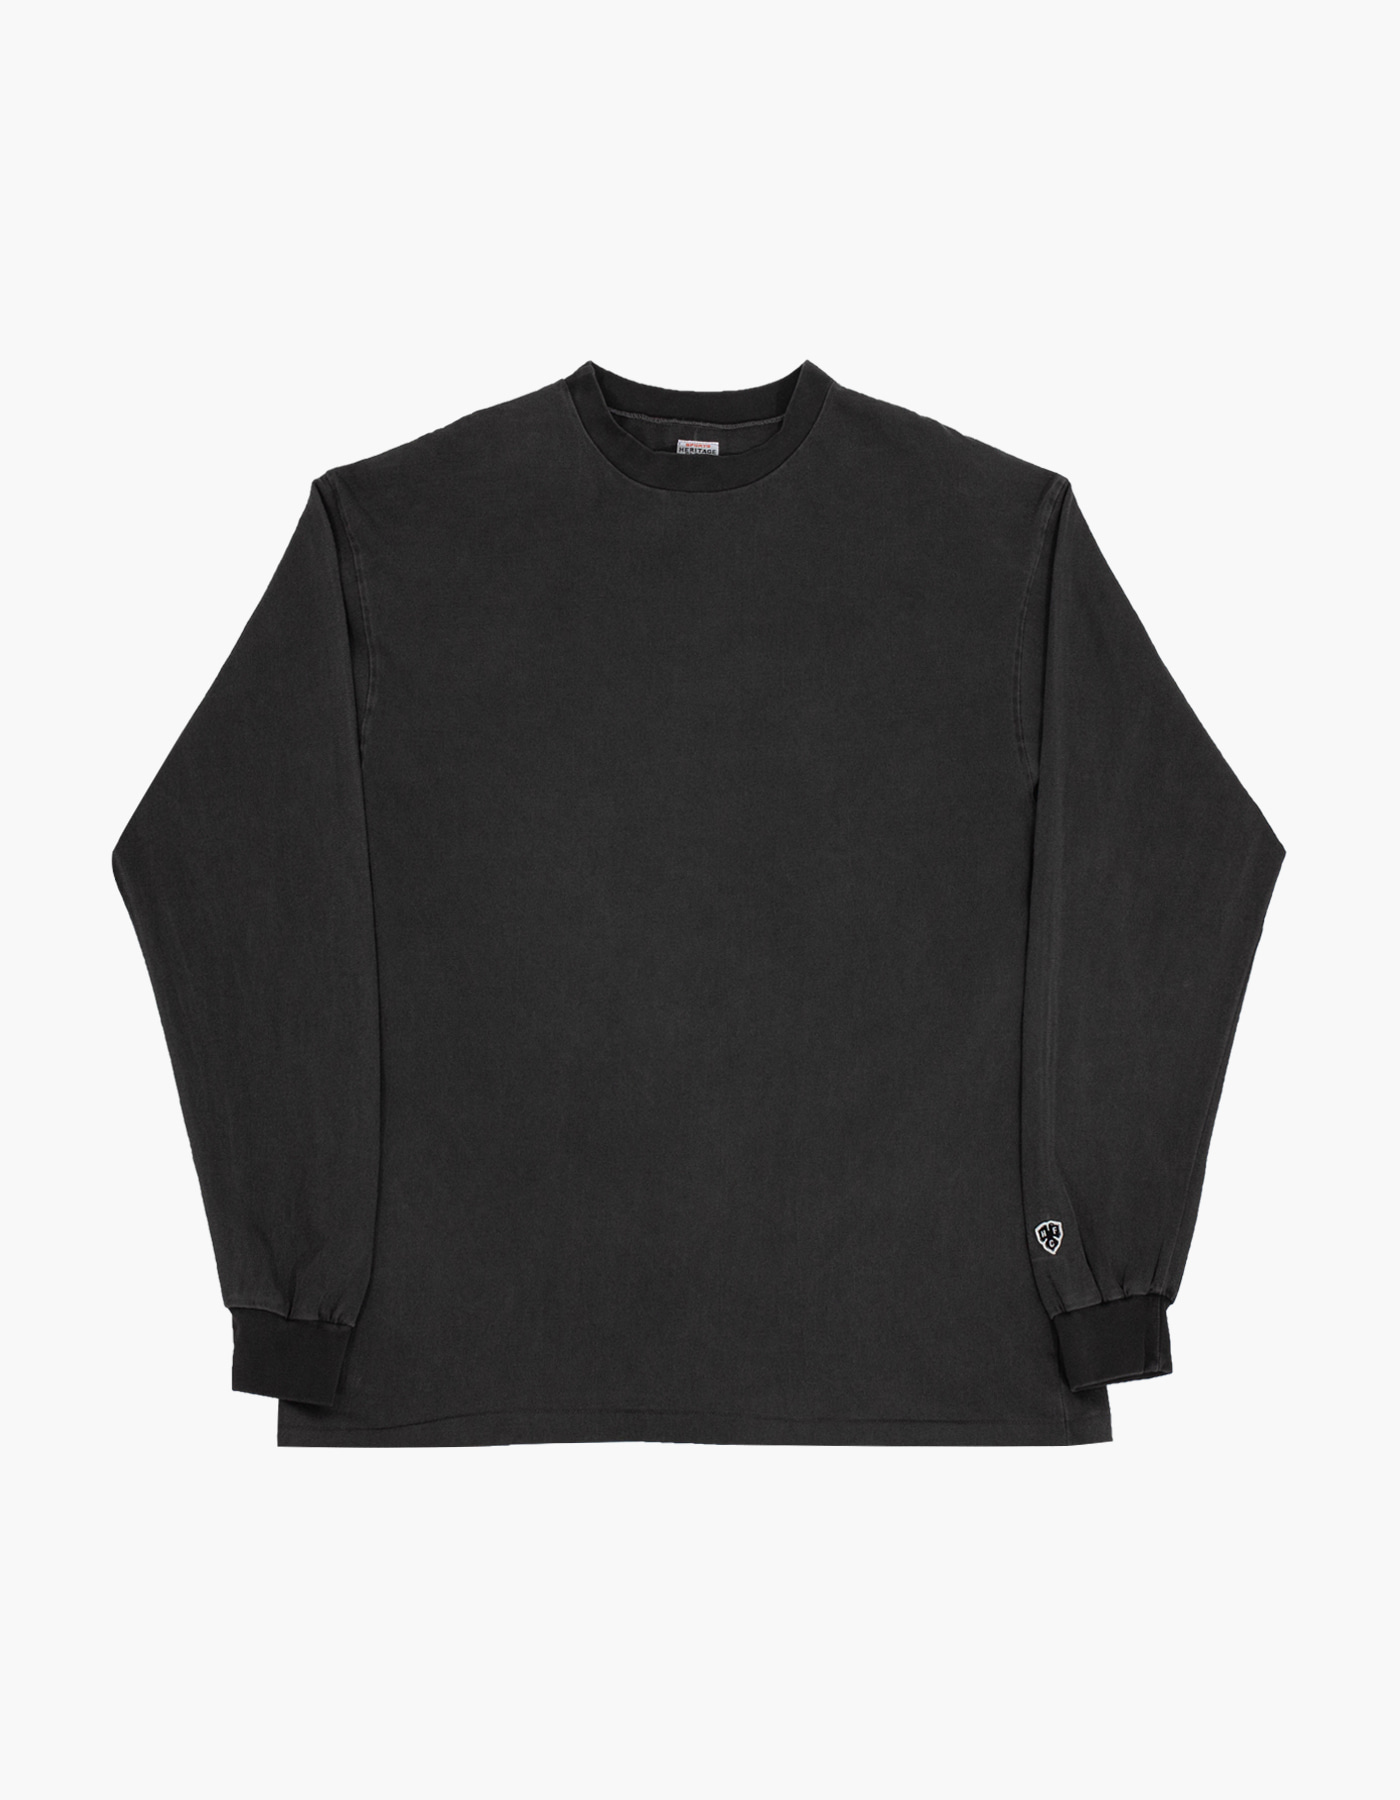 PIGMENT COMPACT YARN LONG SLEEVE / CHARCOAL